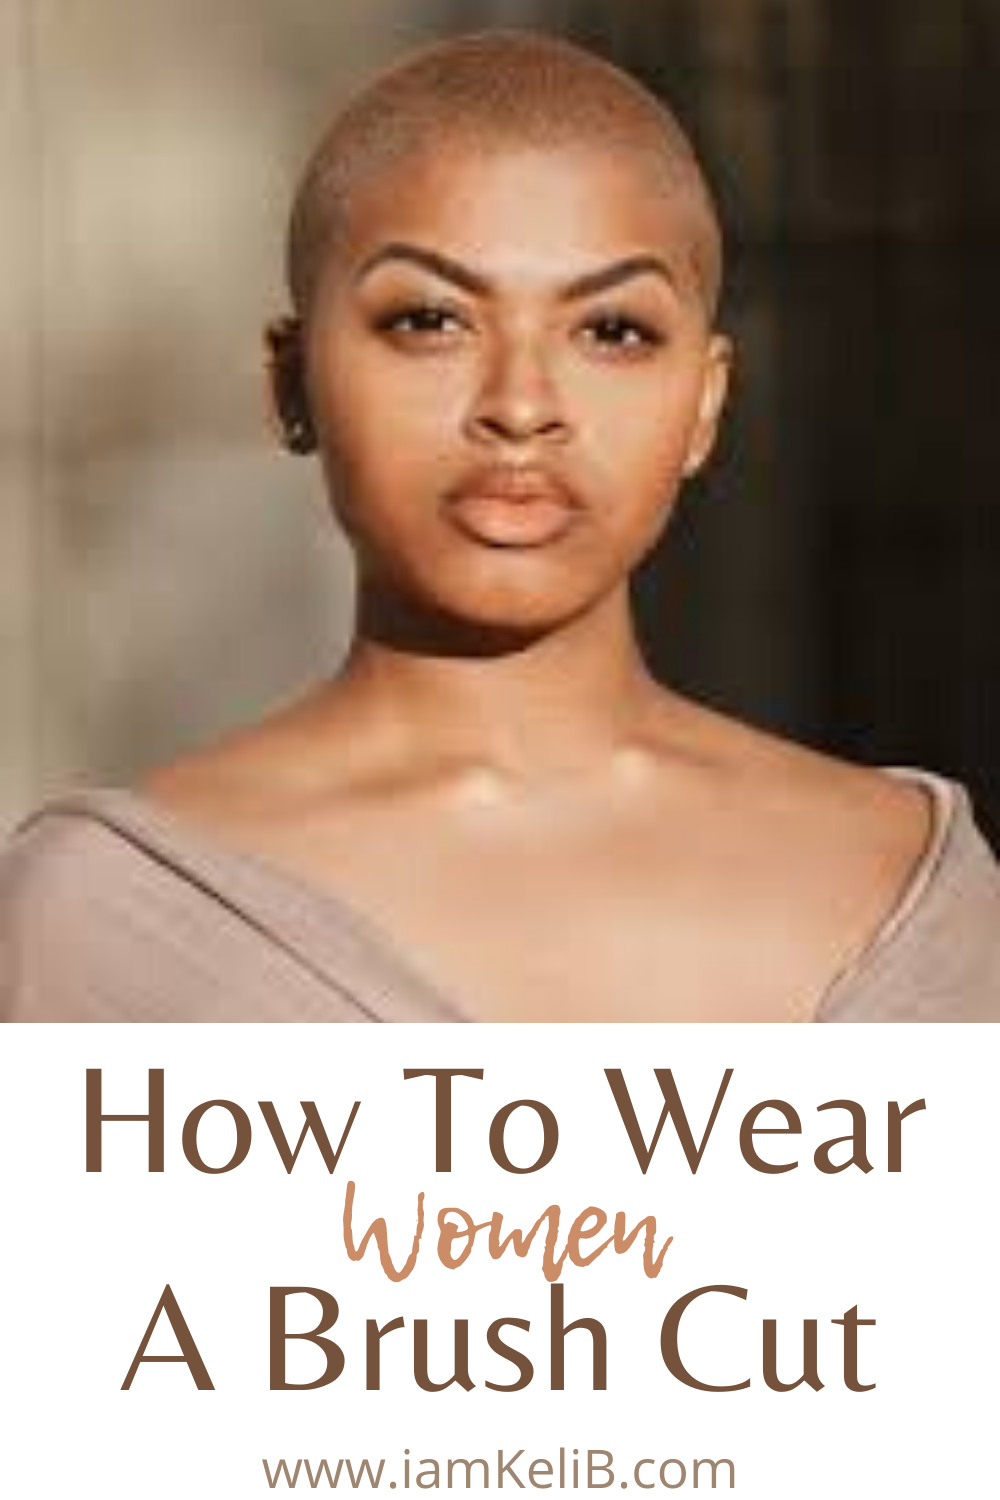 How To Wear A Brush Cut